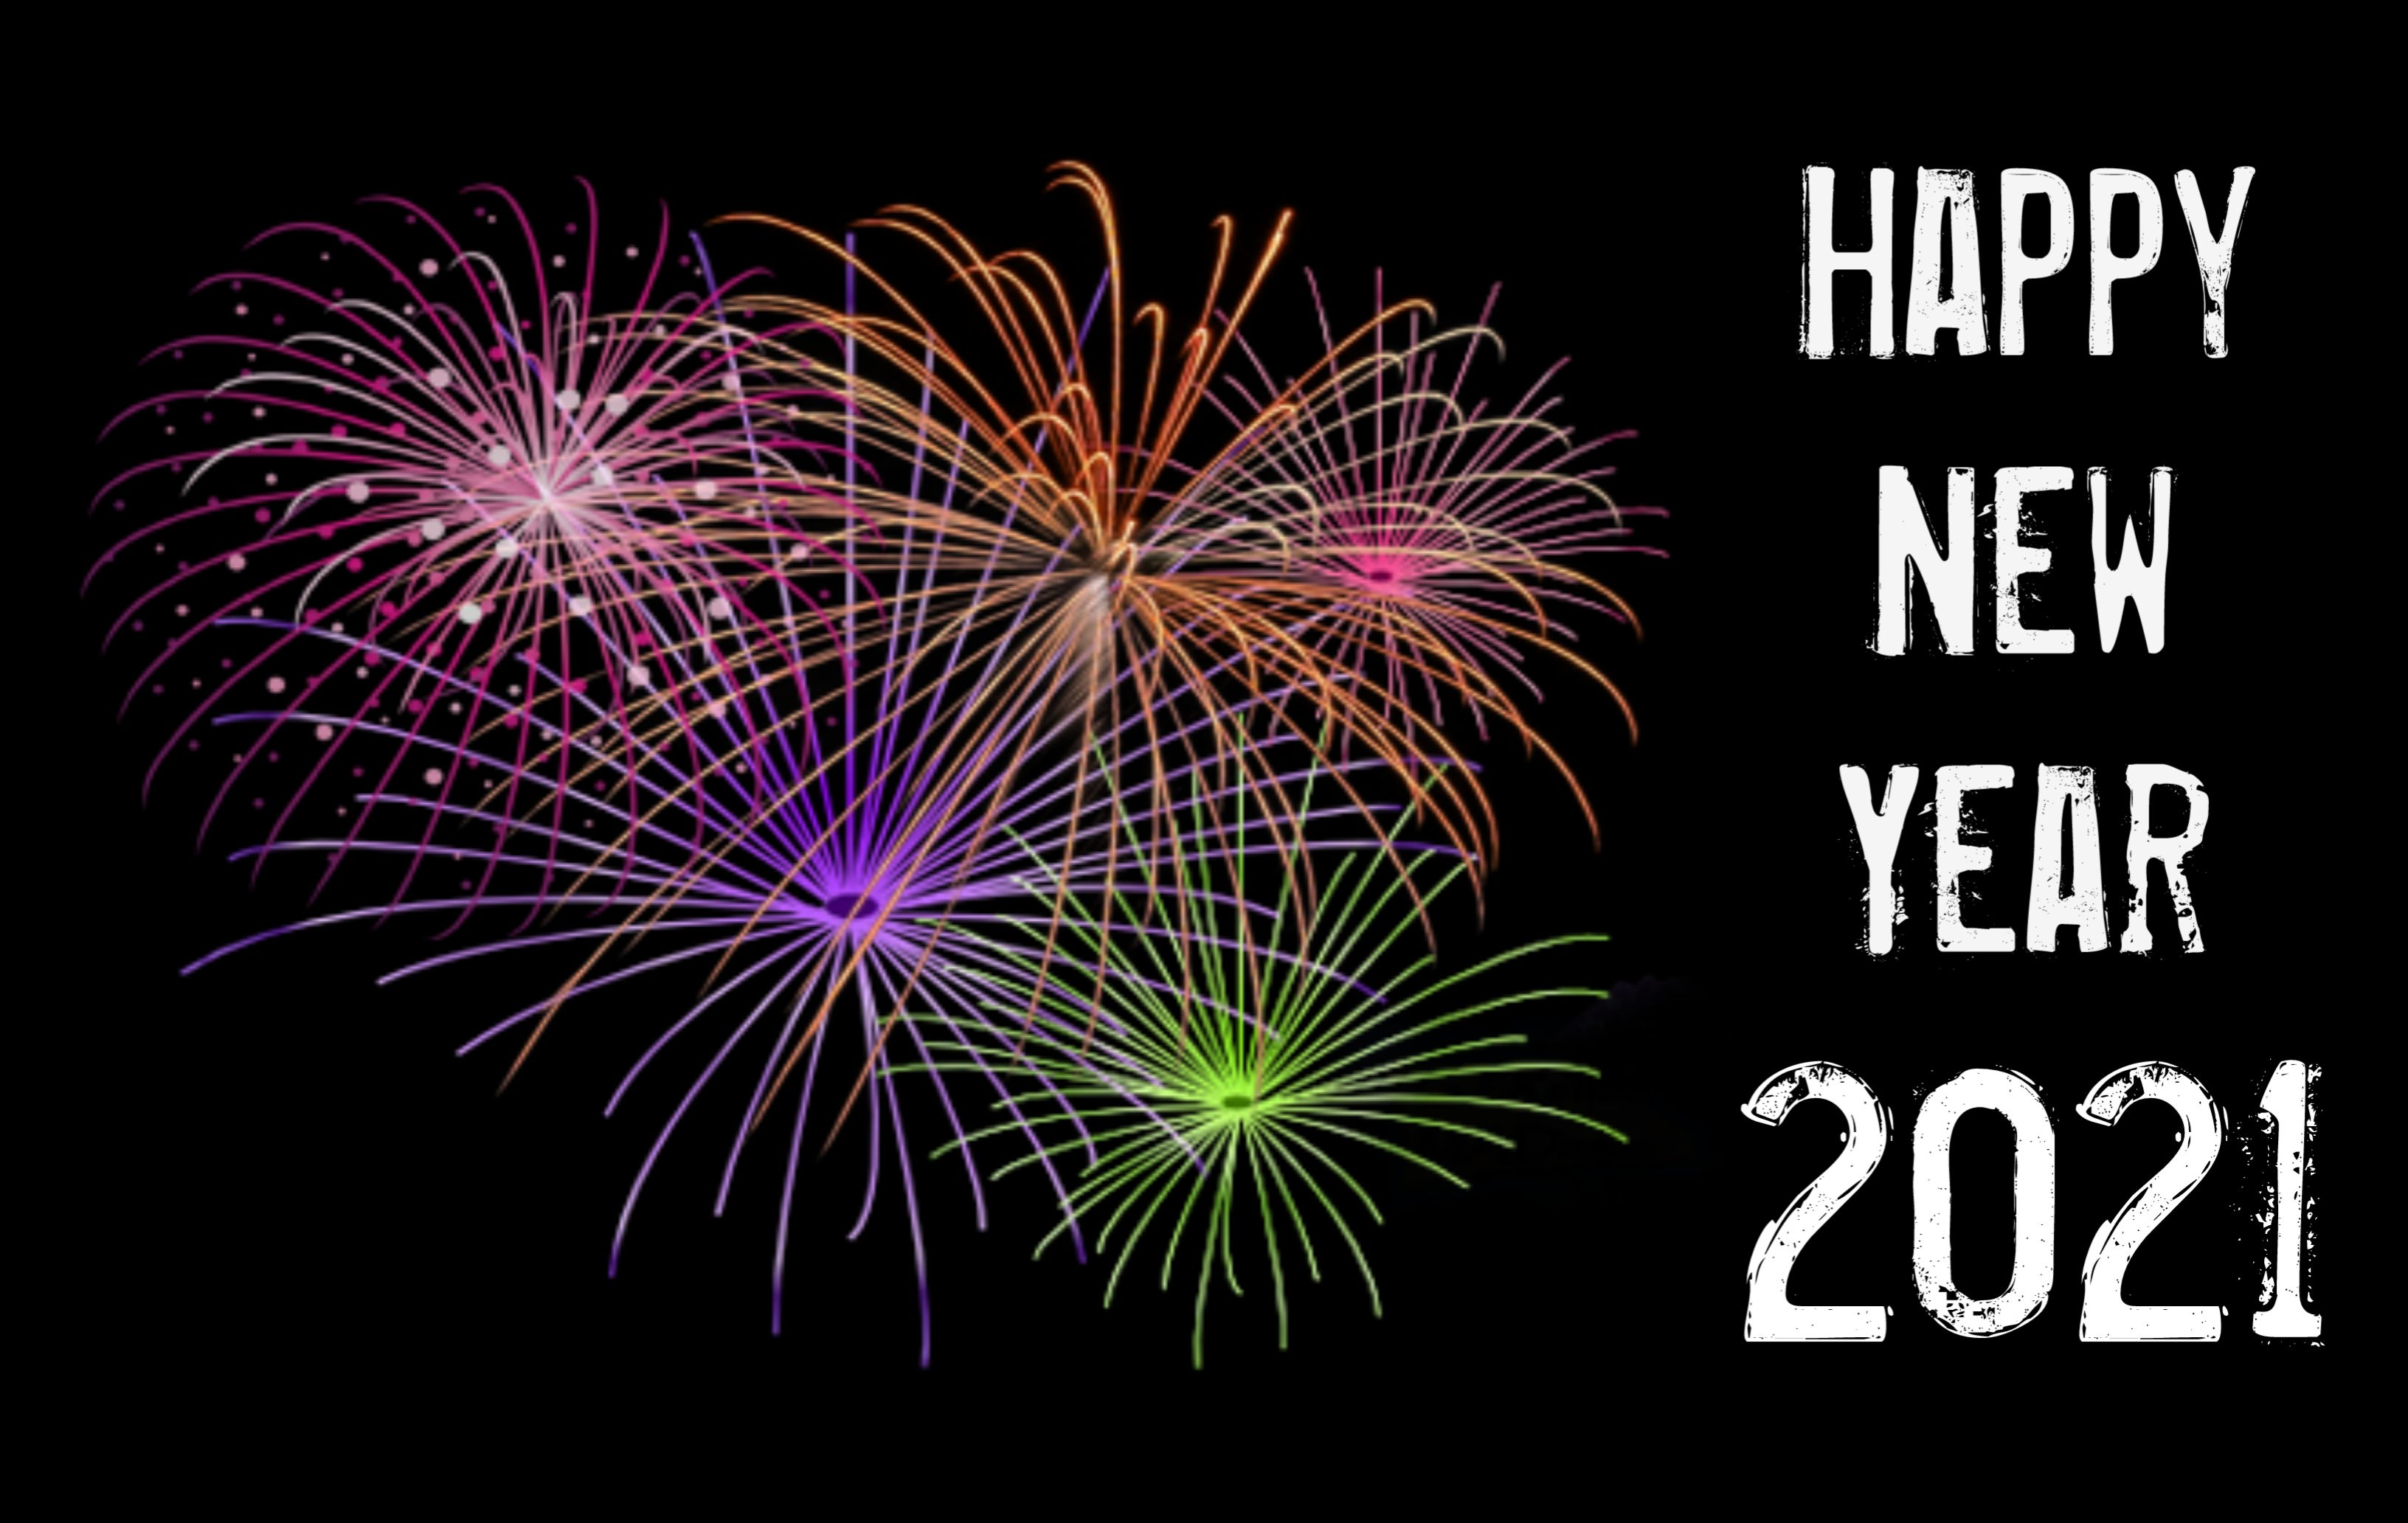 Happy New Year 2021 Images Happy New Year Images New Year Images Happy New Year Hd wallpaper new year 2021 wishes